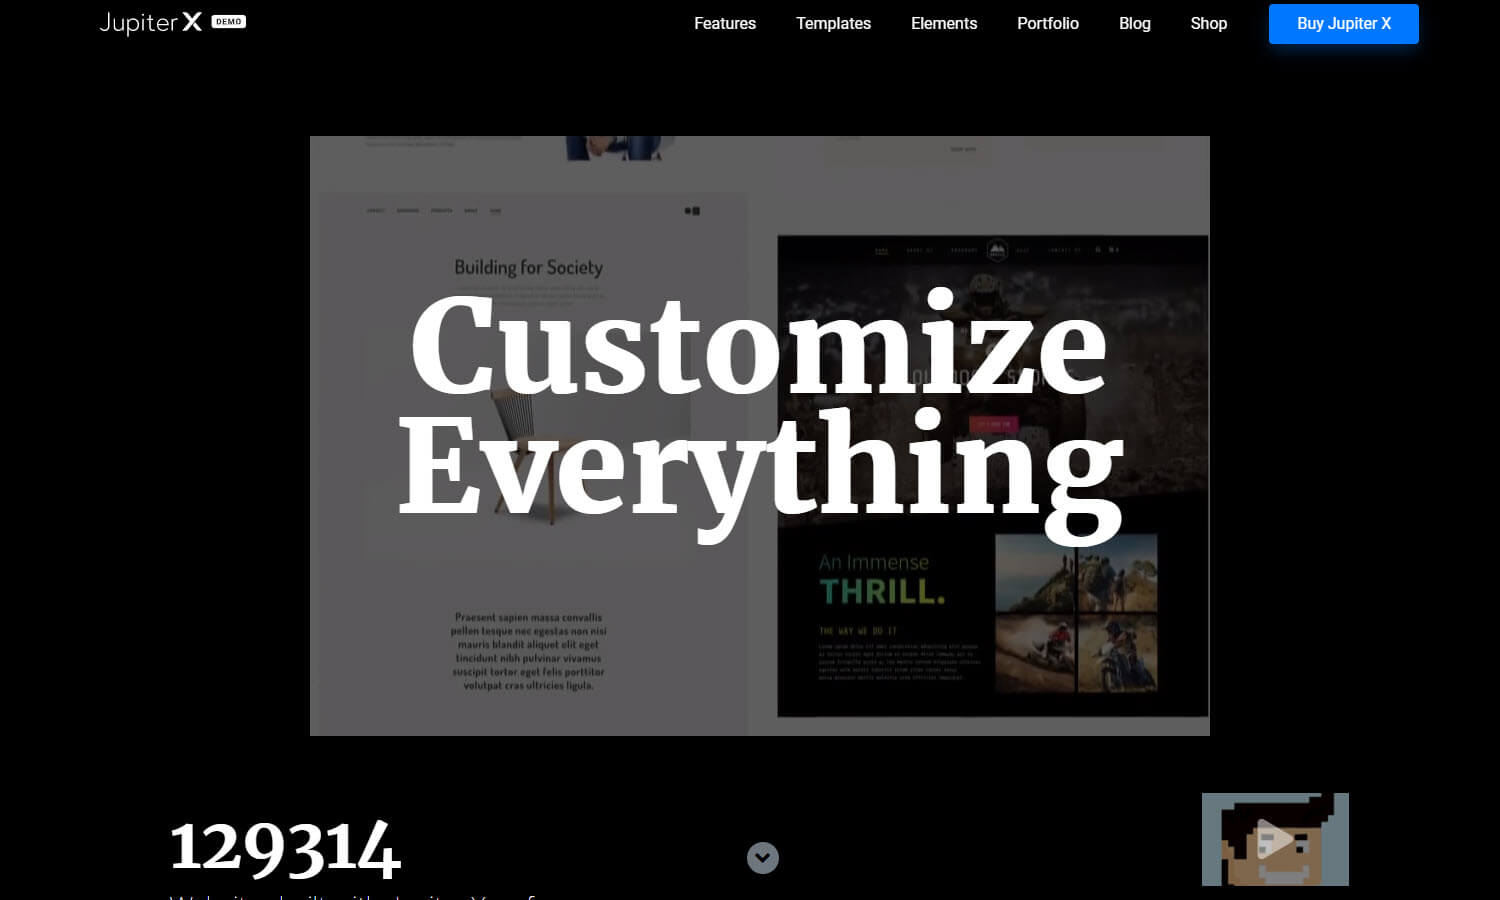 JupiterX screenshot